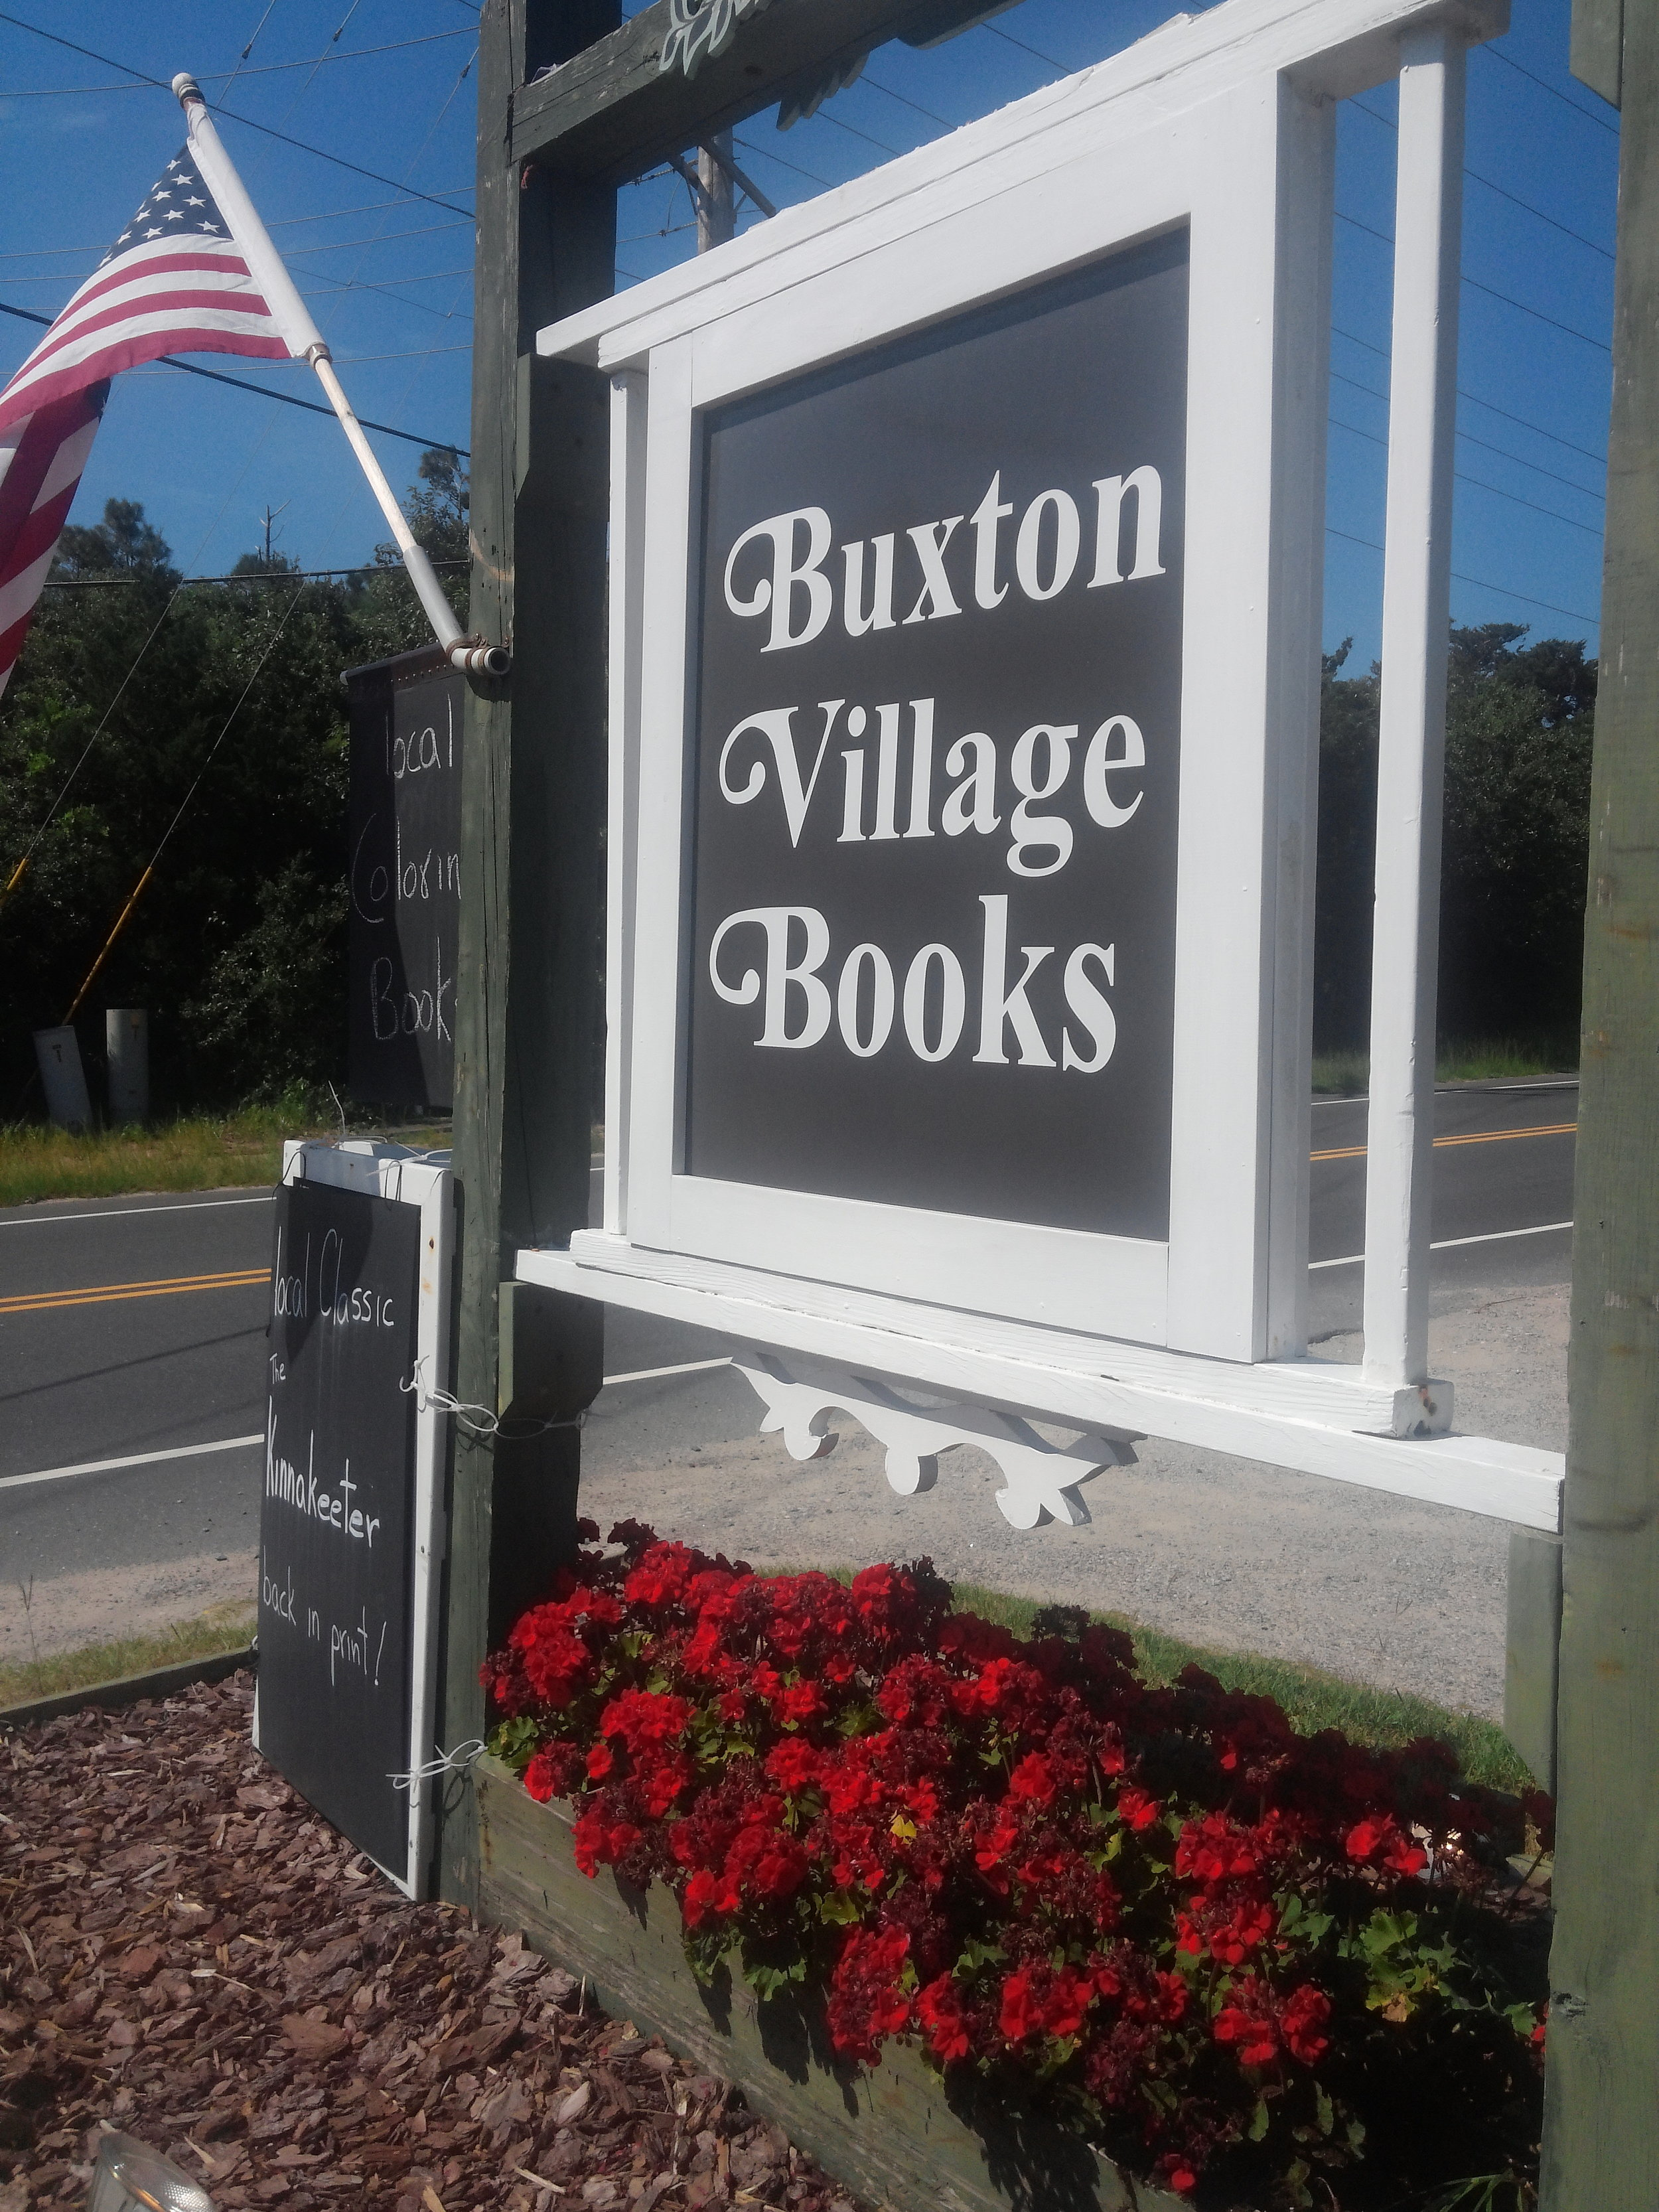 The bookstore is located directly off Hwy 12.